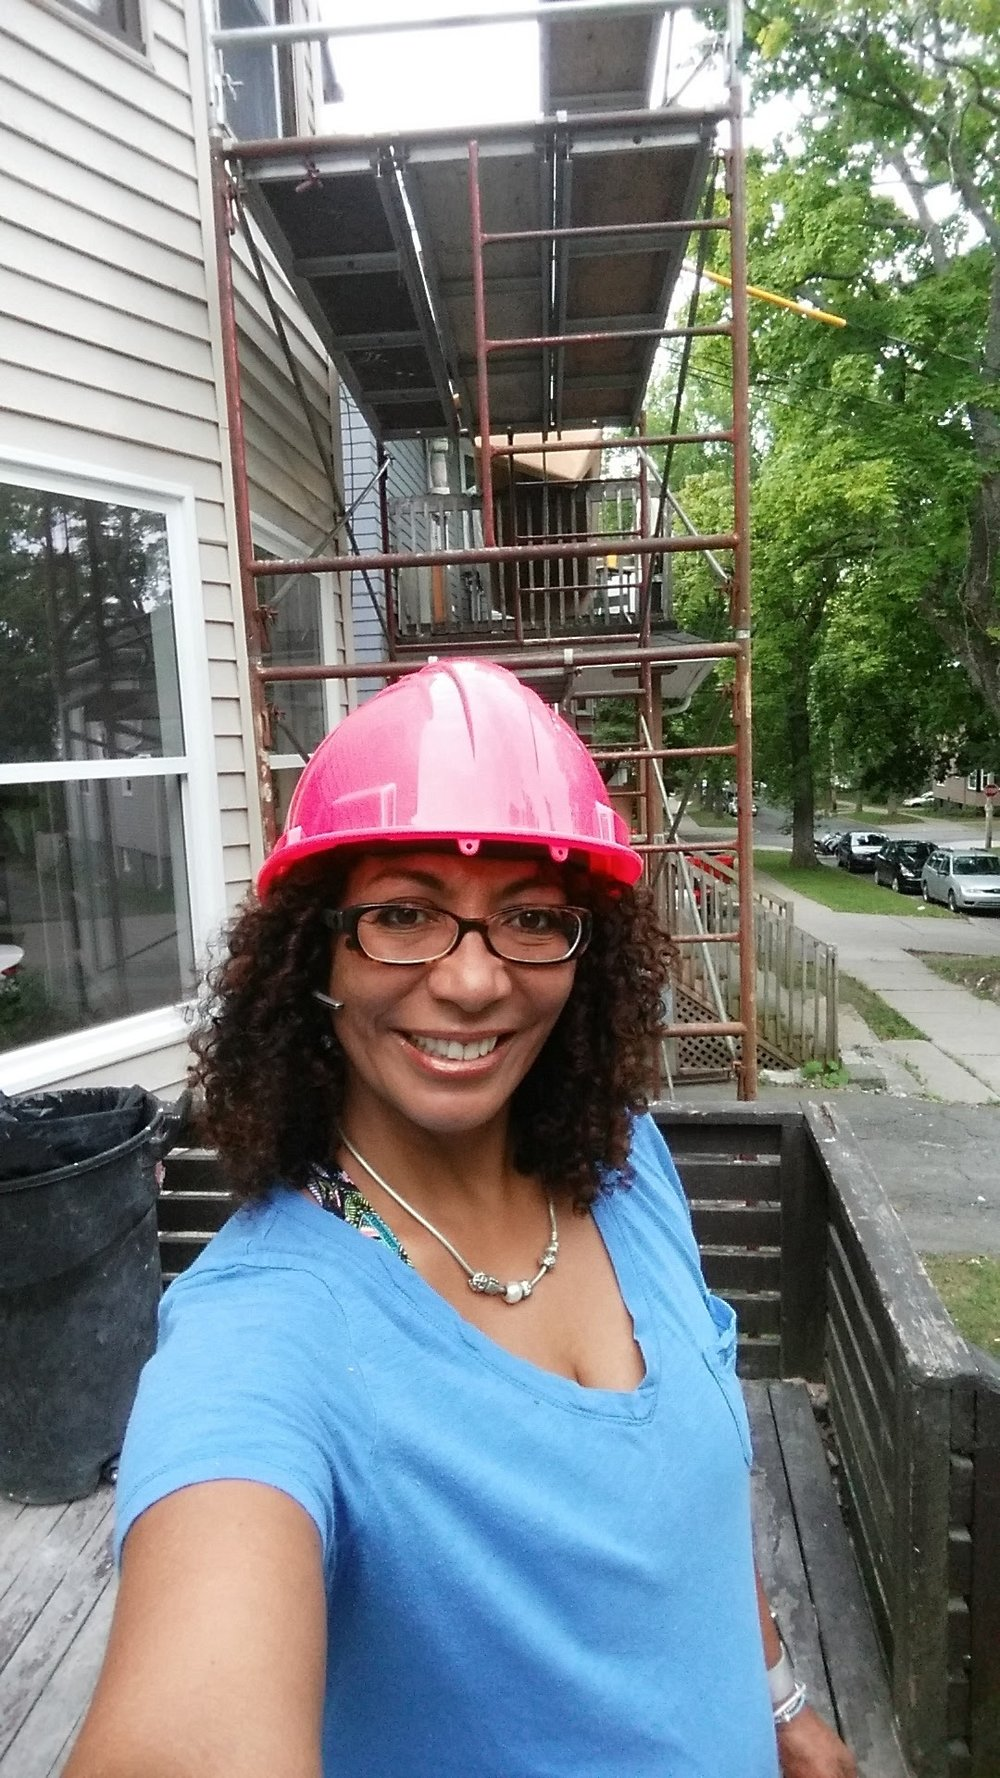 Lisa on site with Pink Hardhat